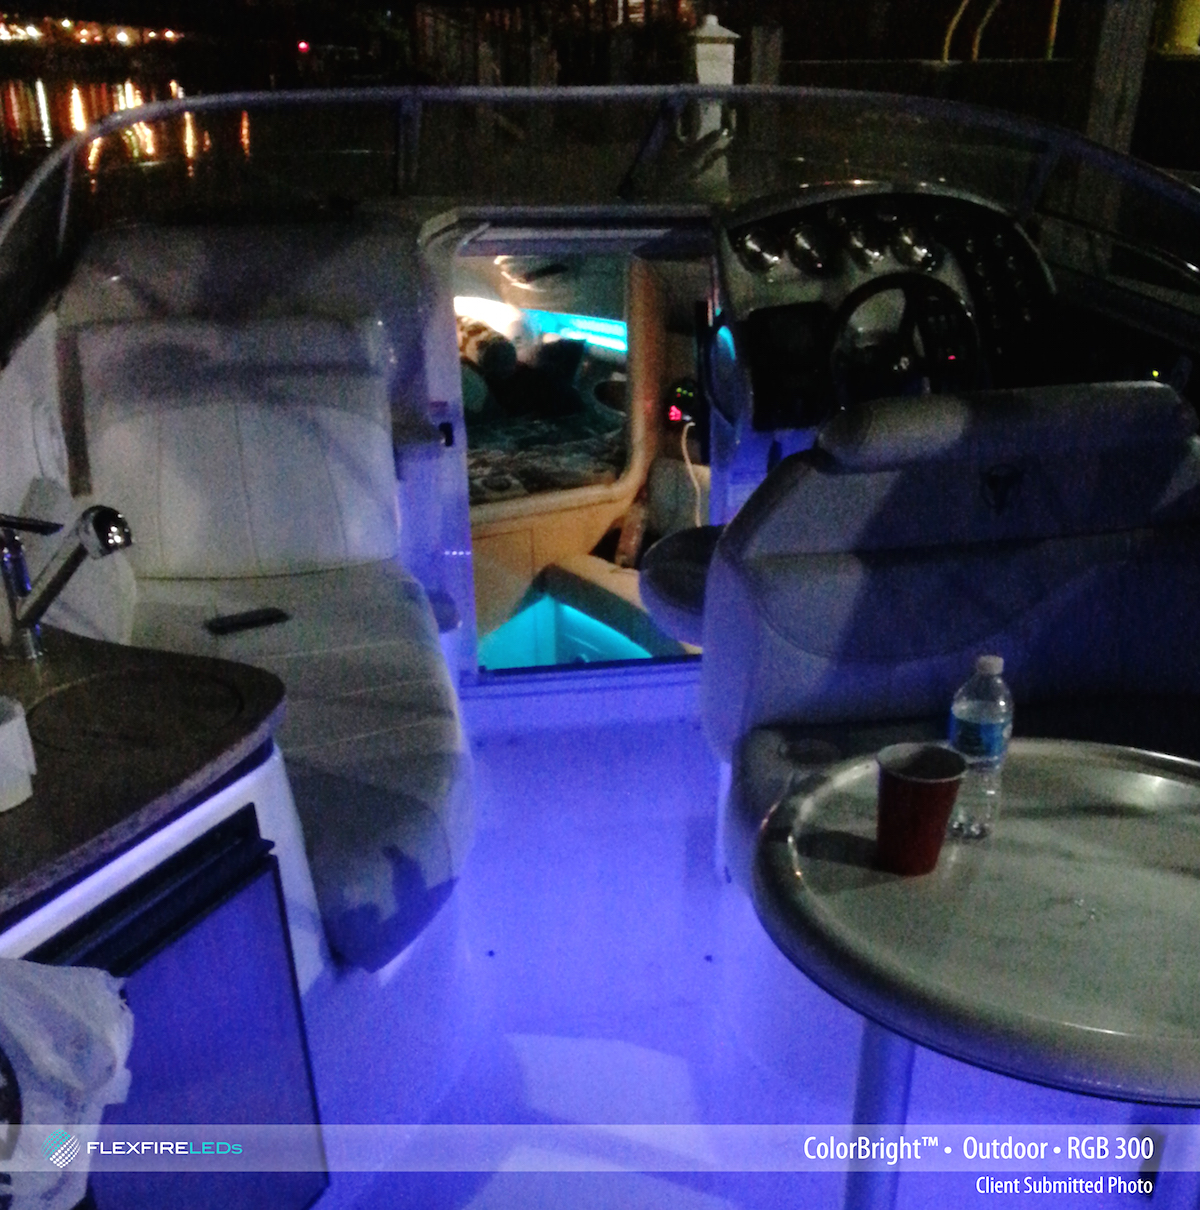 Led Lights Strip Installation In Garage: Custom And Specialty LED Strip Lighting Projects From